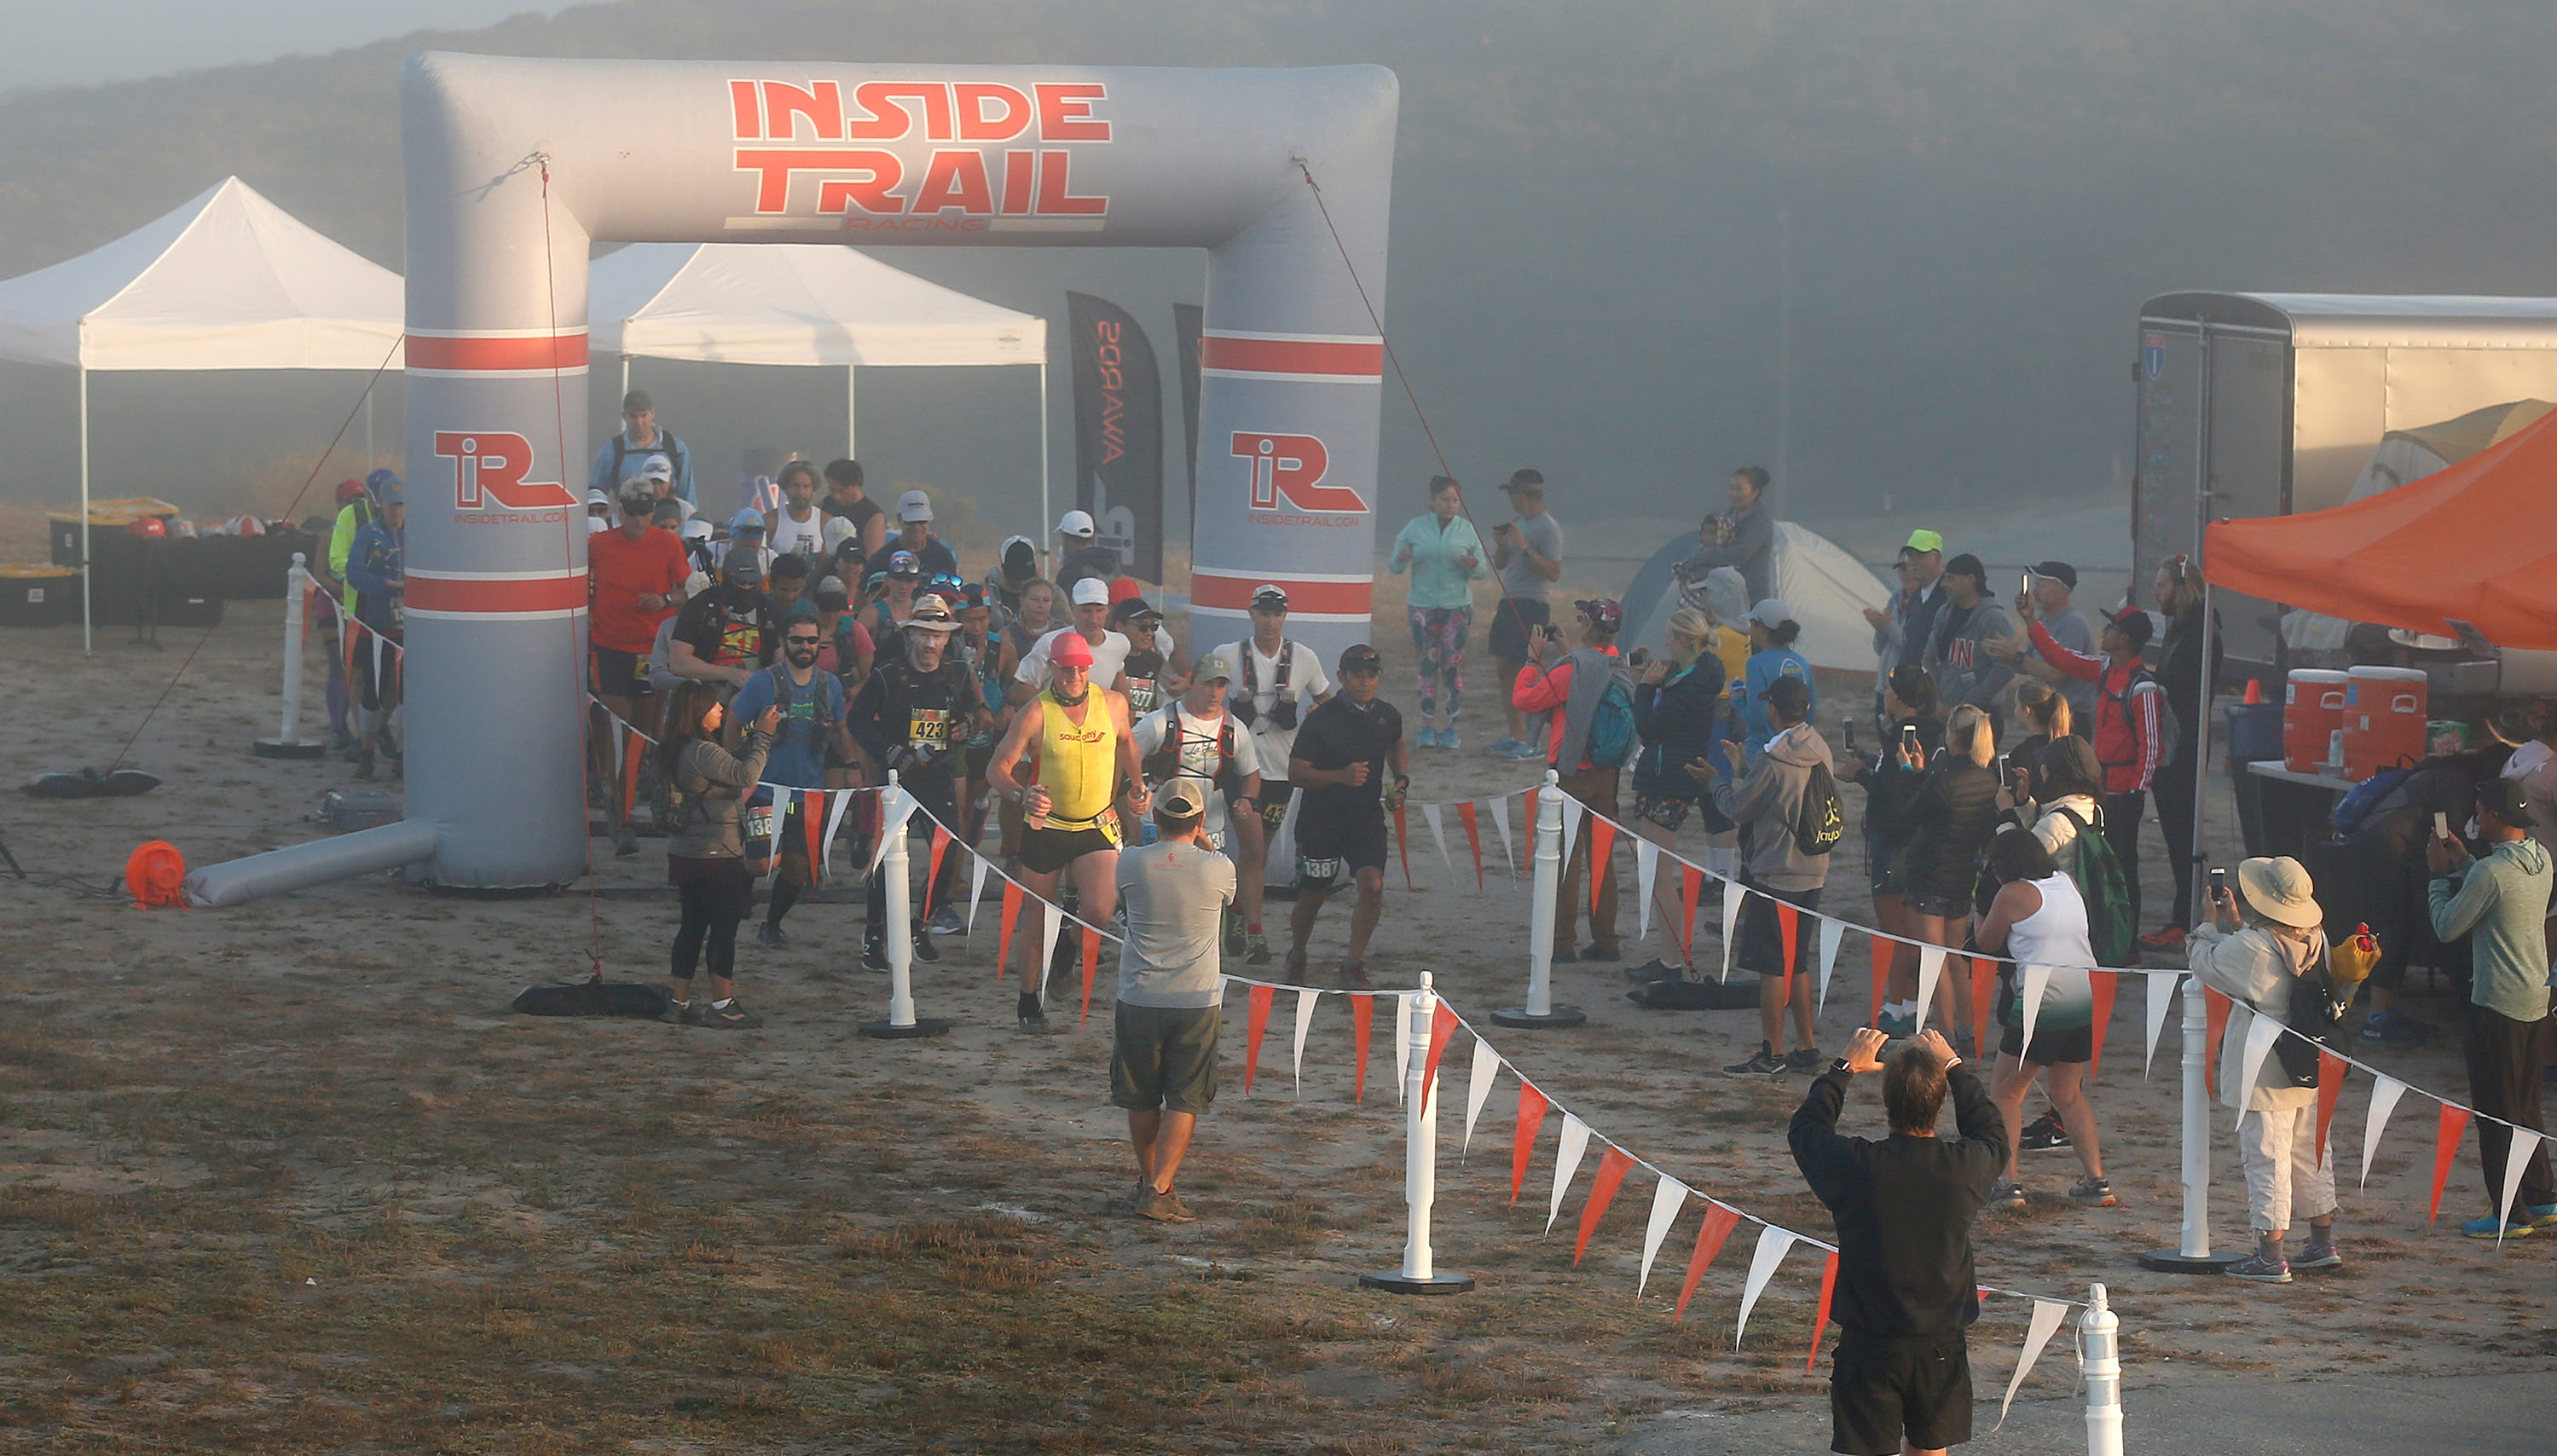 35K and 50K division runners start their race under foggy conditions during the Golden State Trail Run at Fort Old National Monument and Laguna Recreation Area in Monterey County, California on Saturday August 18, 2018.The event featured 10K Half Marathon, 35K and 50K races. Photo By David Royal